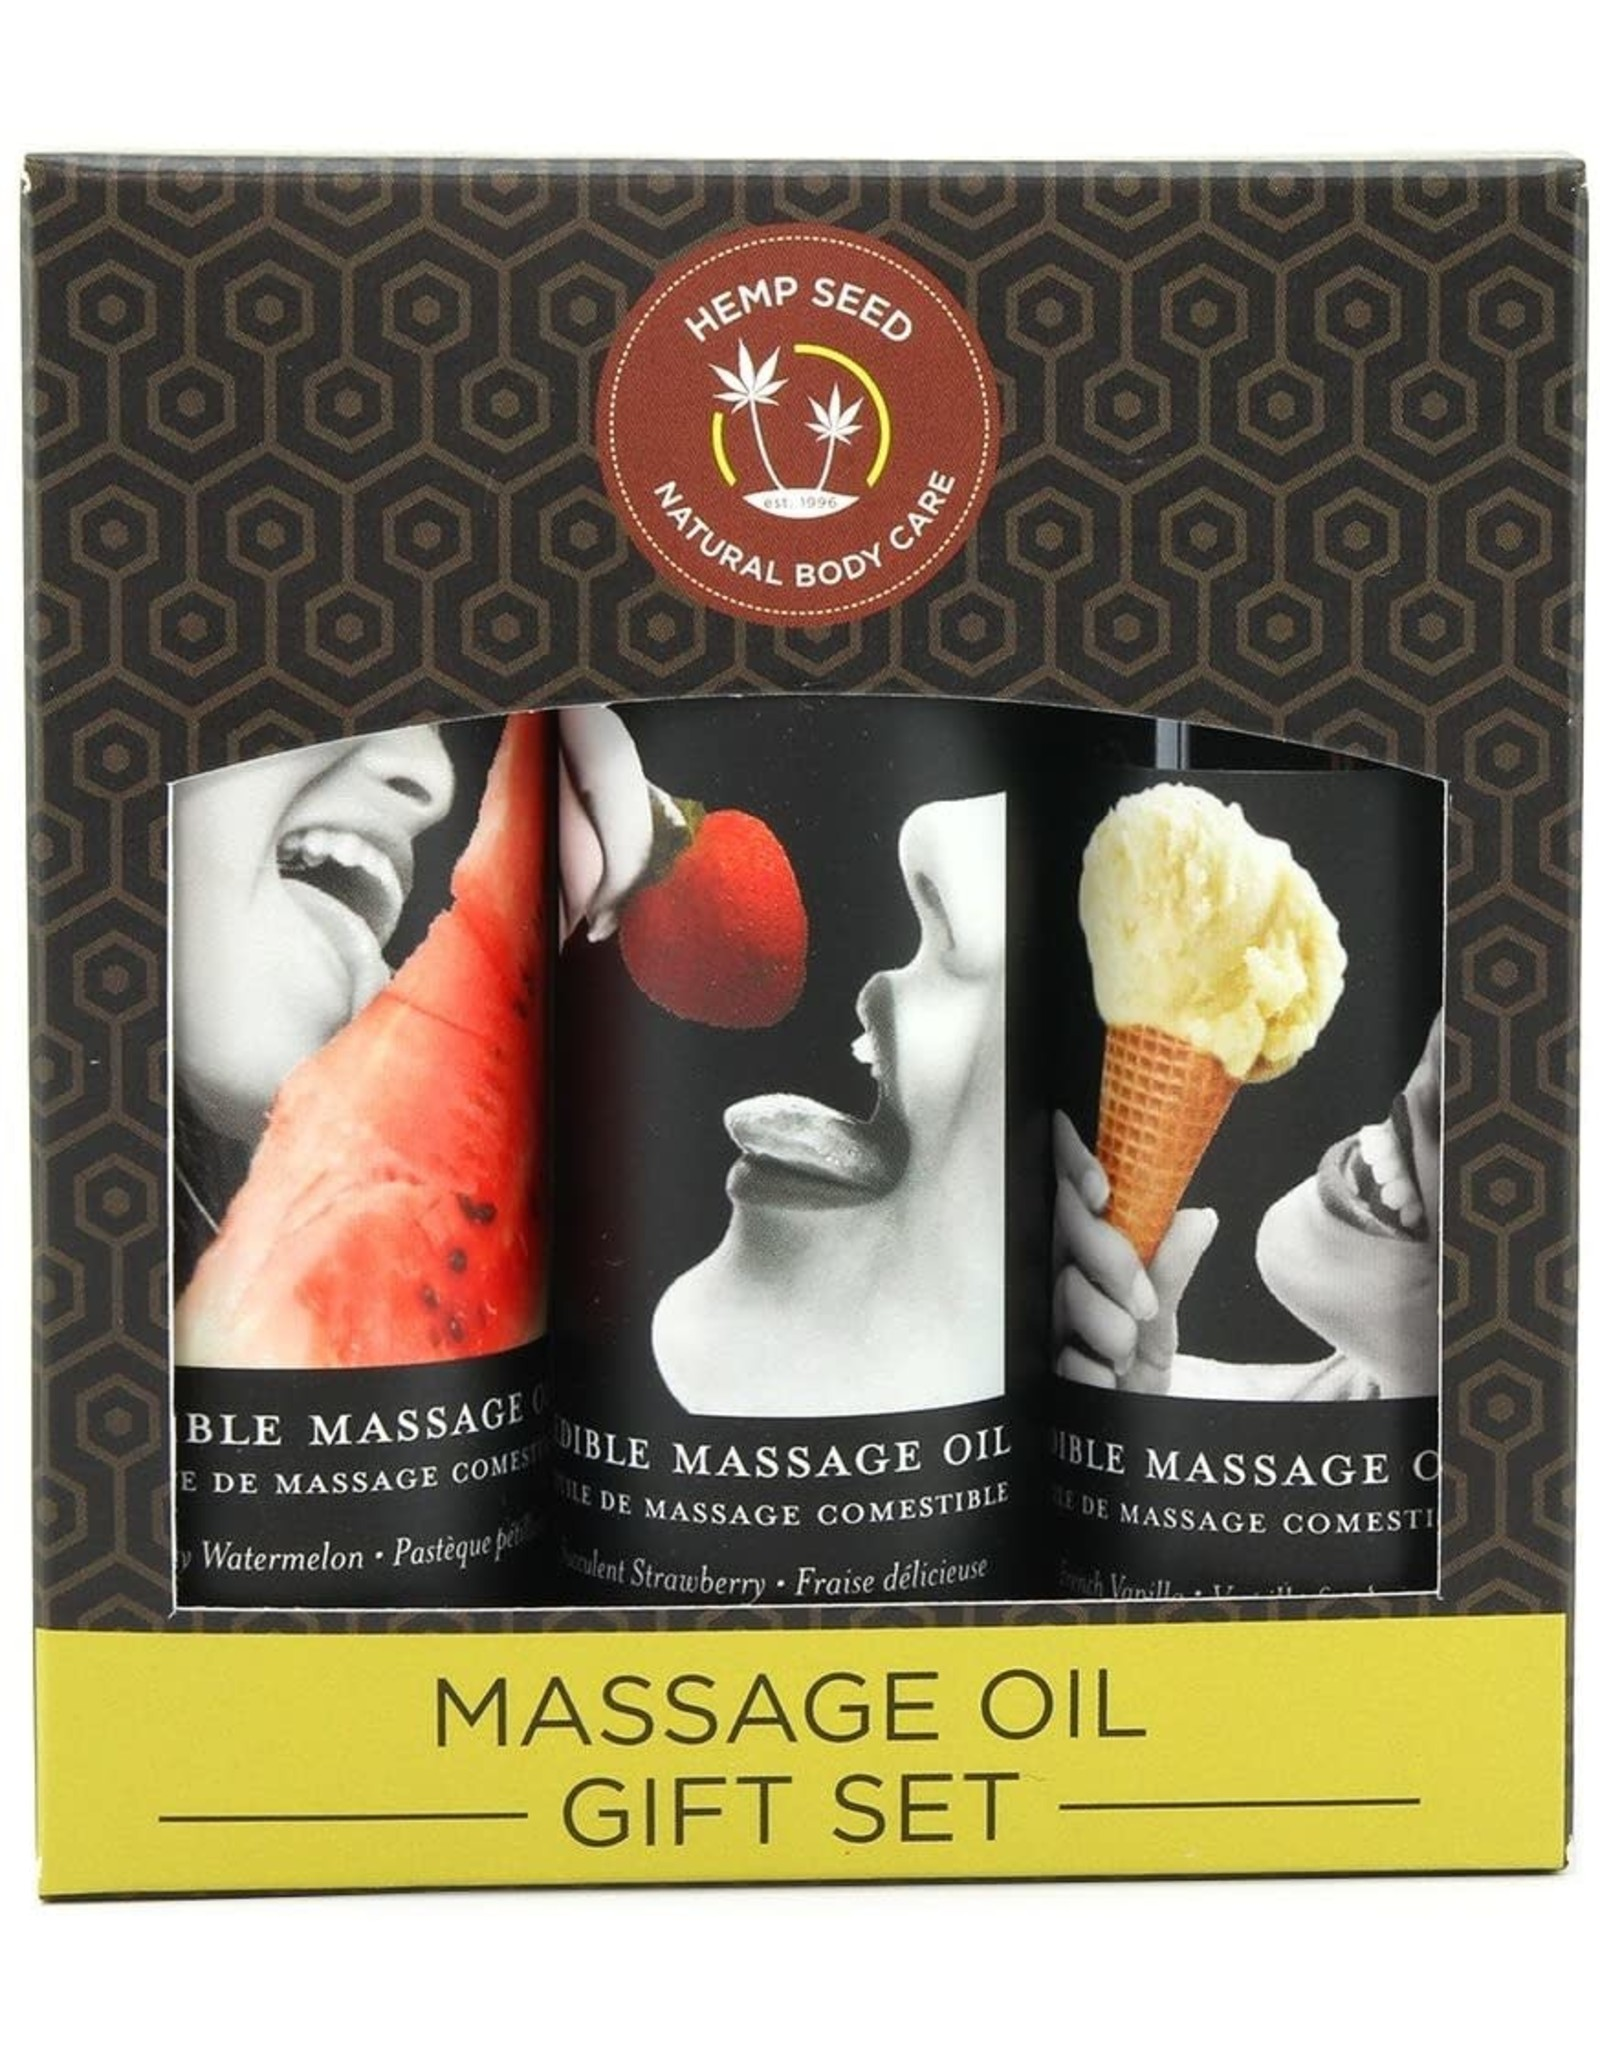 EARTHLY BODIES - EDIBLE MASSAGE OIL GIFT SET 3x2oz